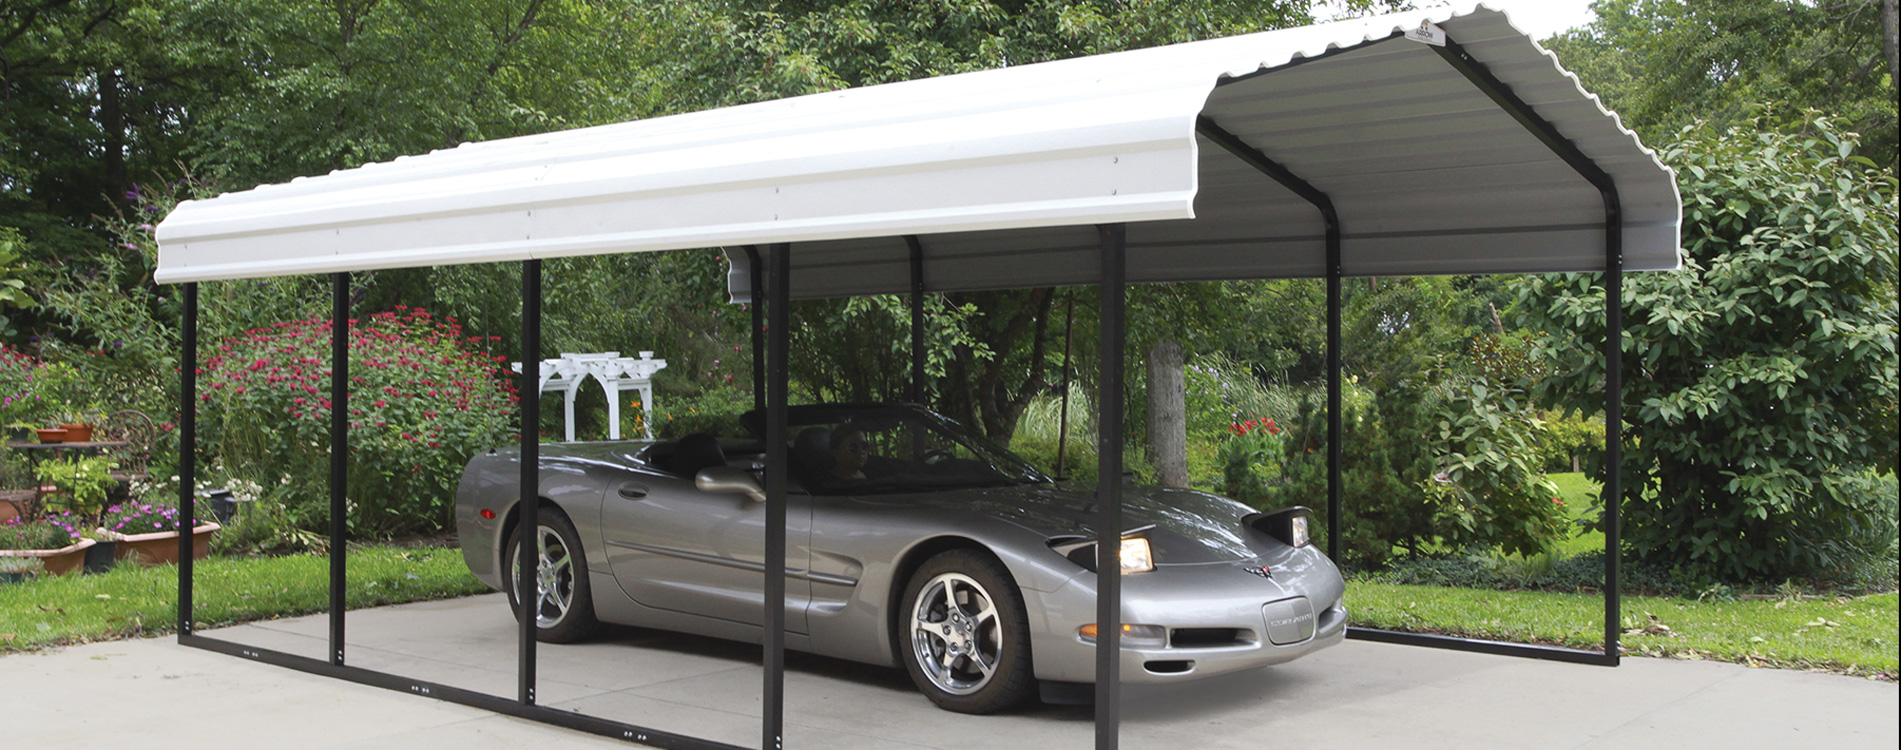 Carport Discount Shelters Of New England Portable Garages Carports And Canopies